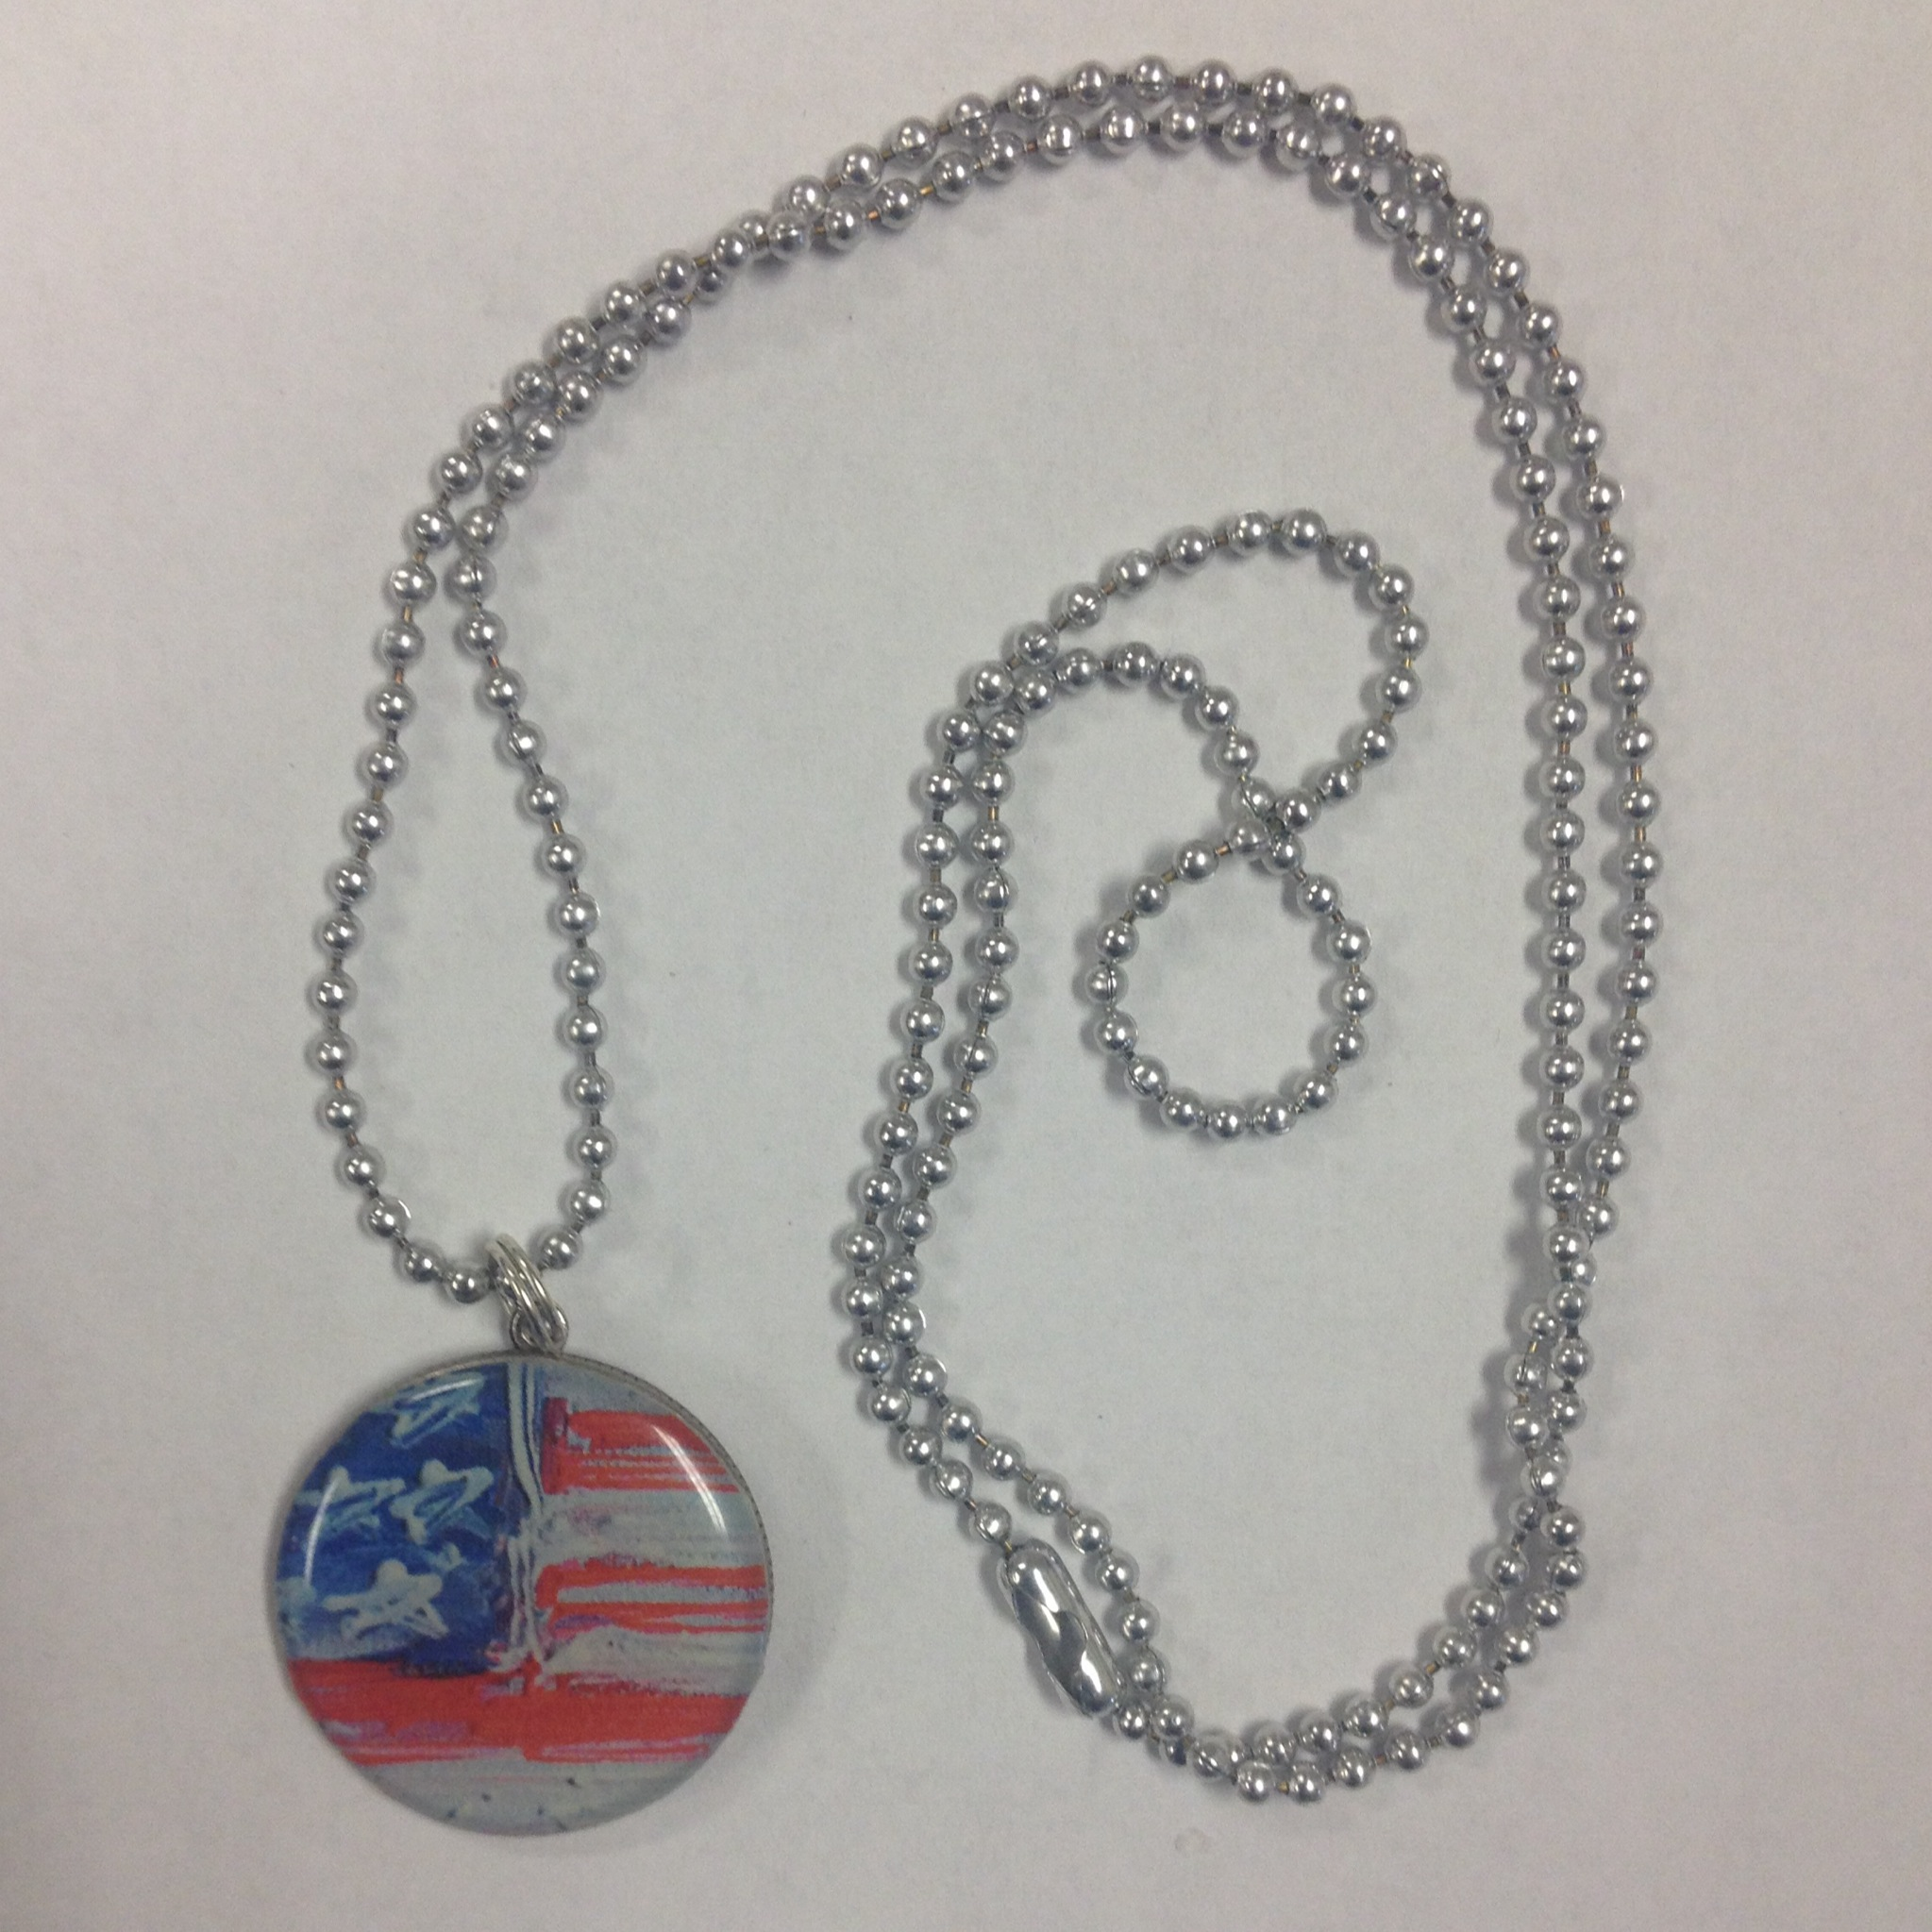 types stars clear gift men day i jewelry american flag women enamel product this necklace crystals with independence need rhodium july wow toned